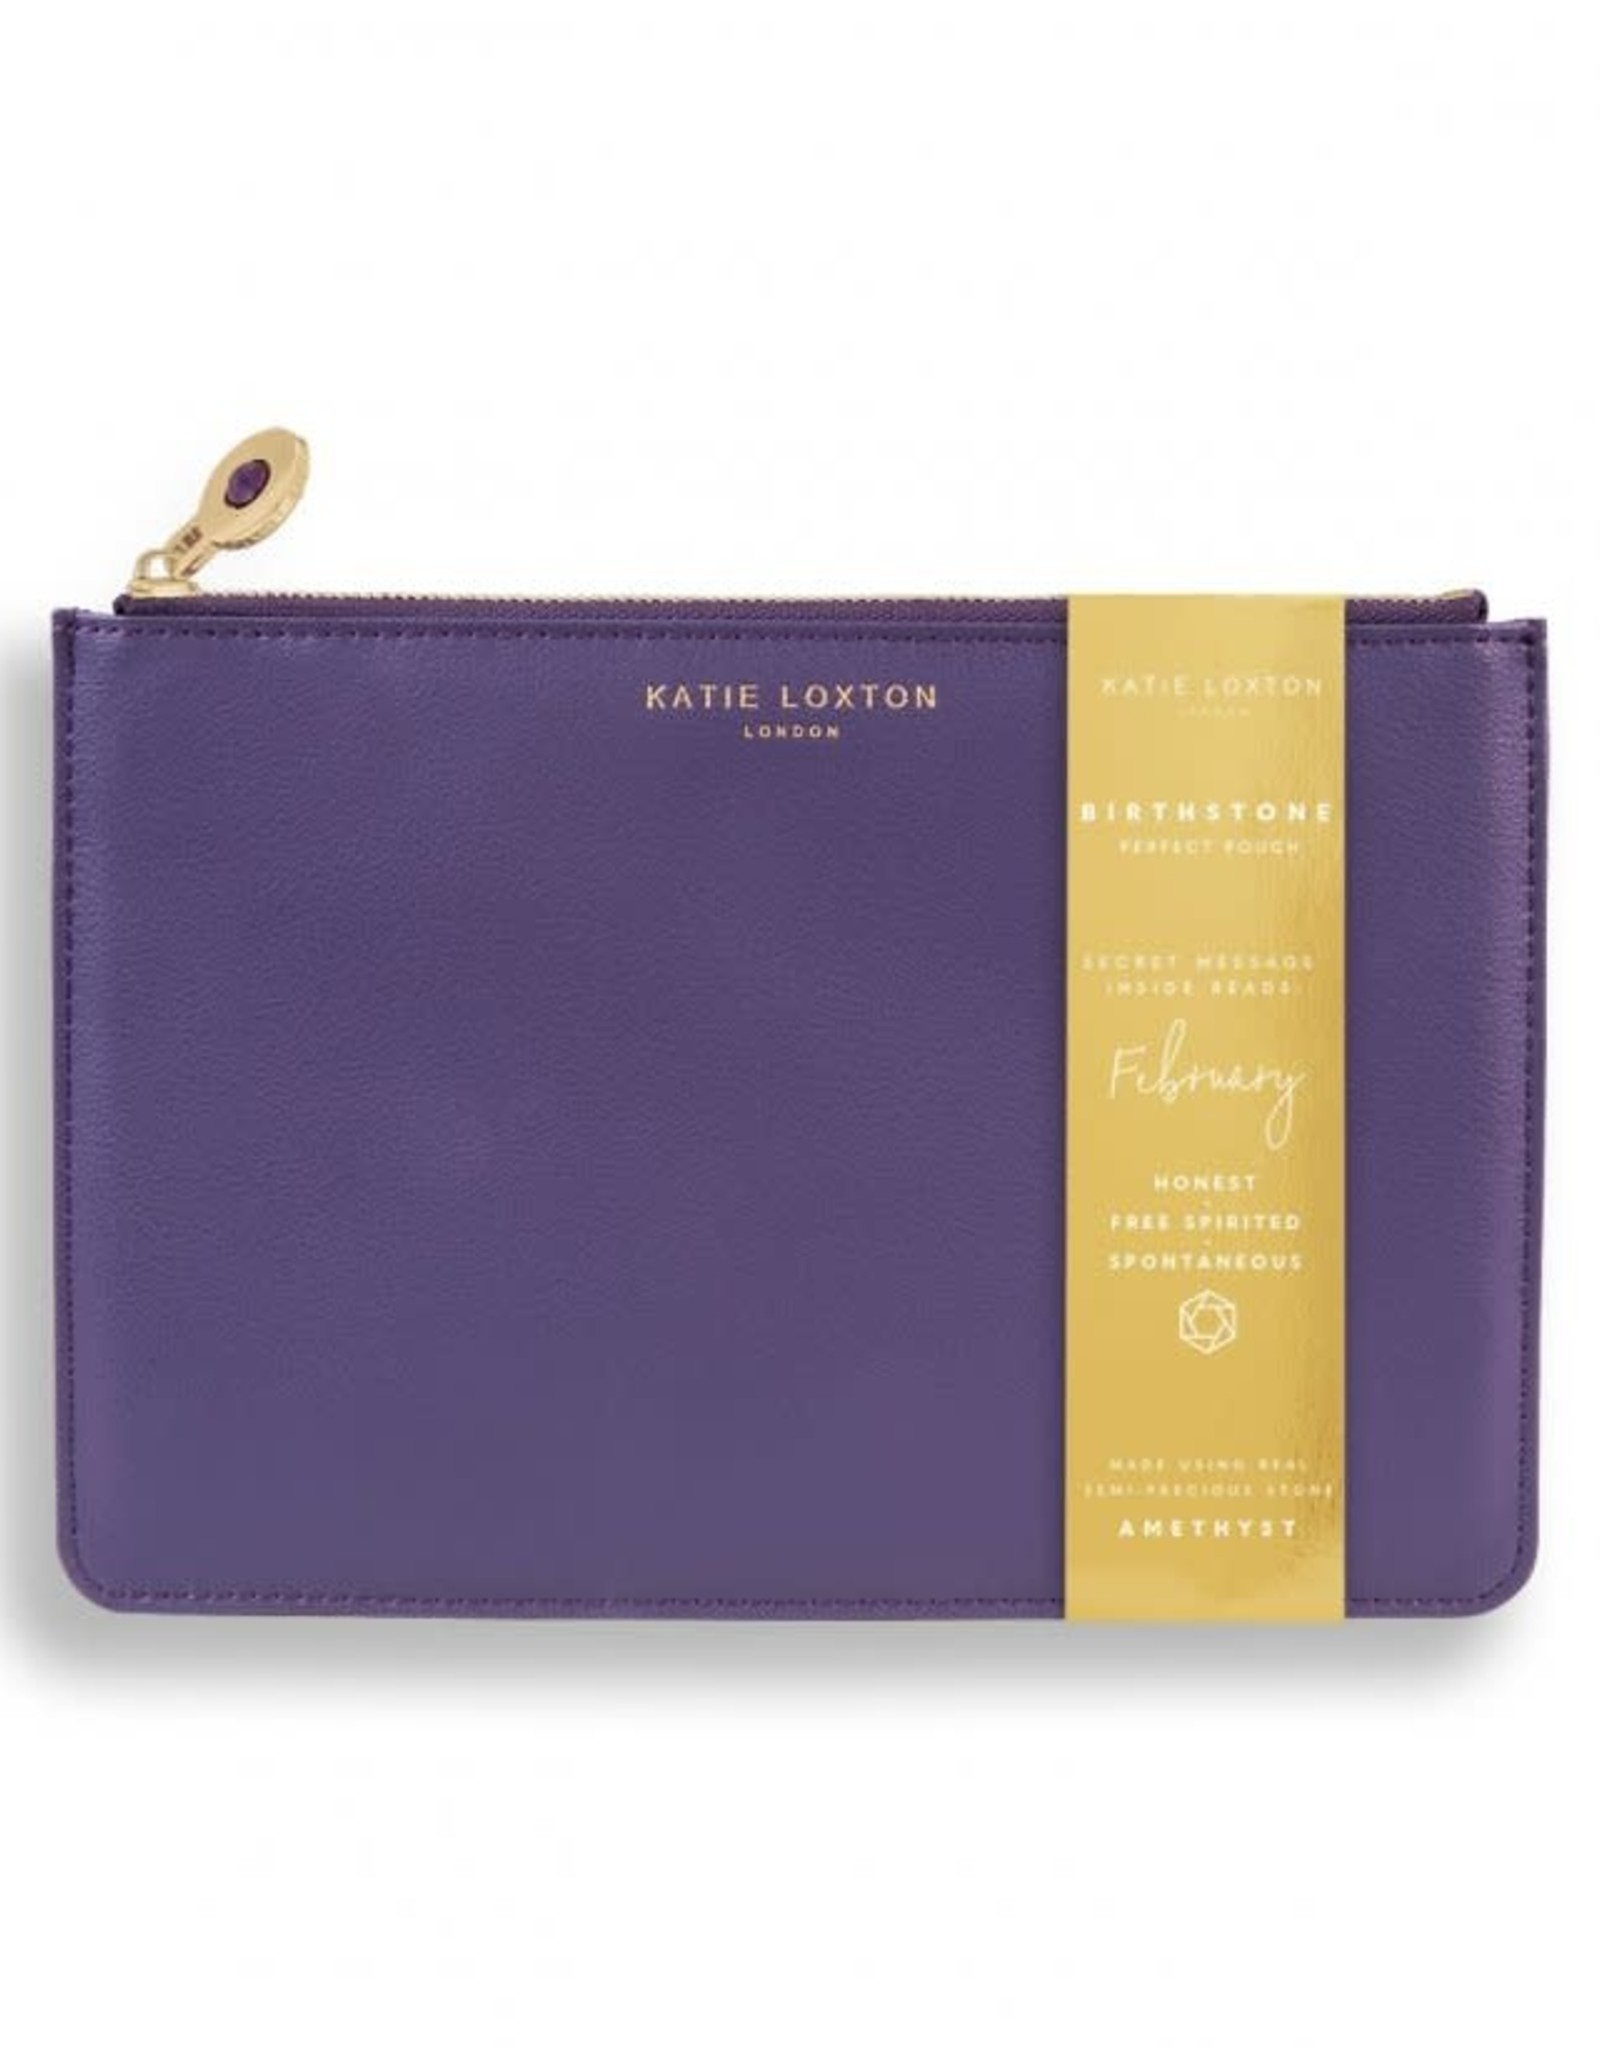 Katie Loxton The Birthstone Perfect Pouch February